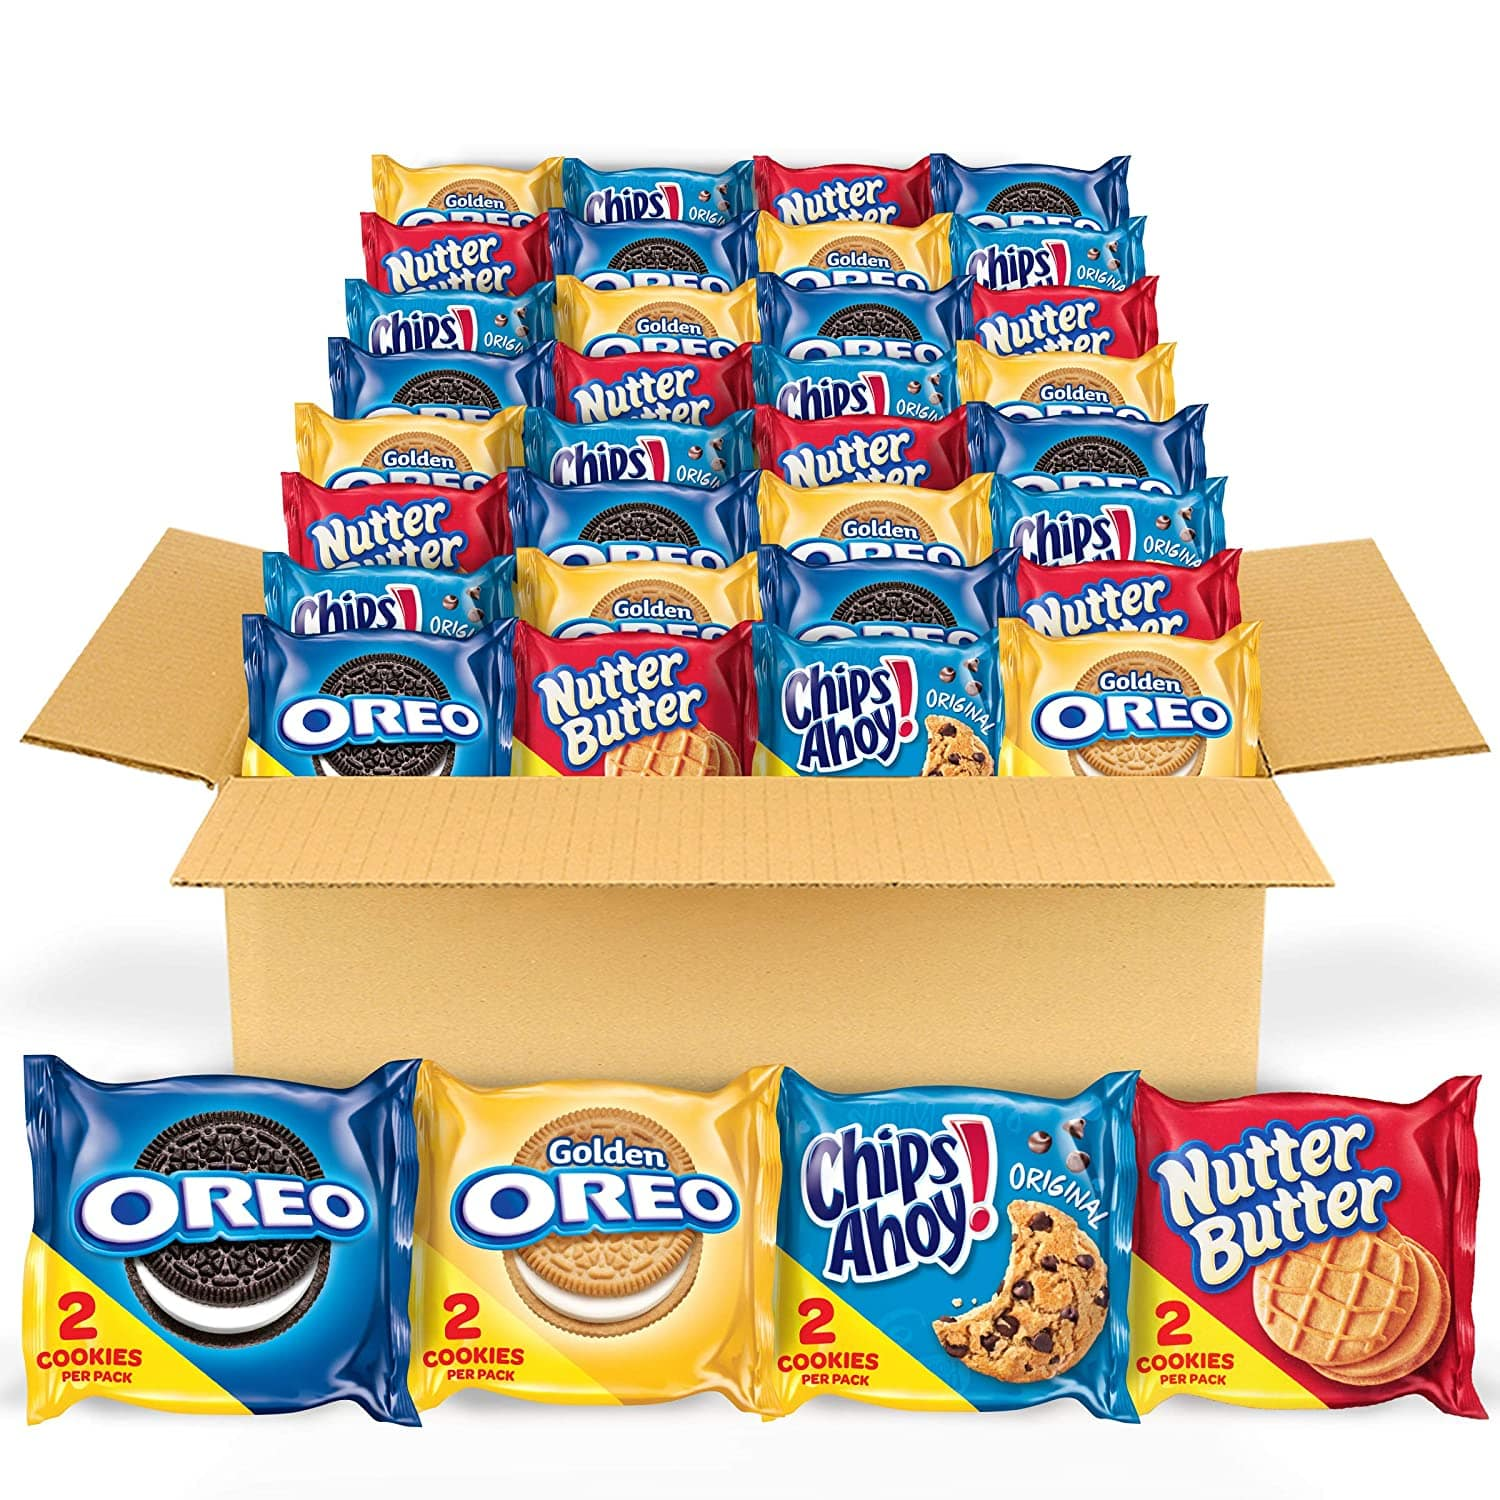 56-Pack Nabisco Cookie Snack Packs $12.44 w/s&s at Amazon